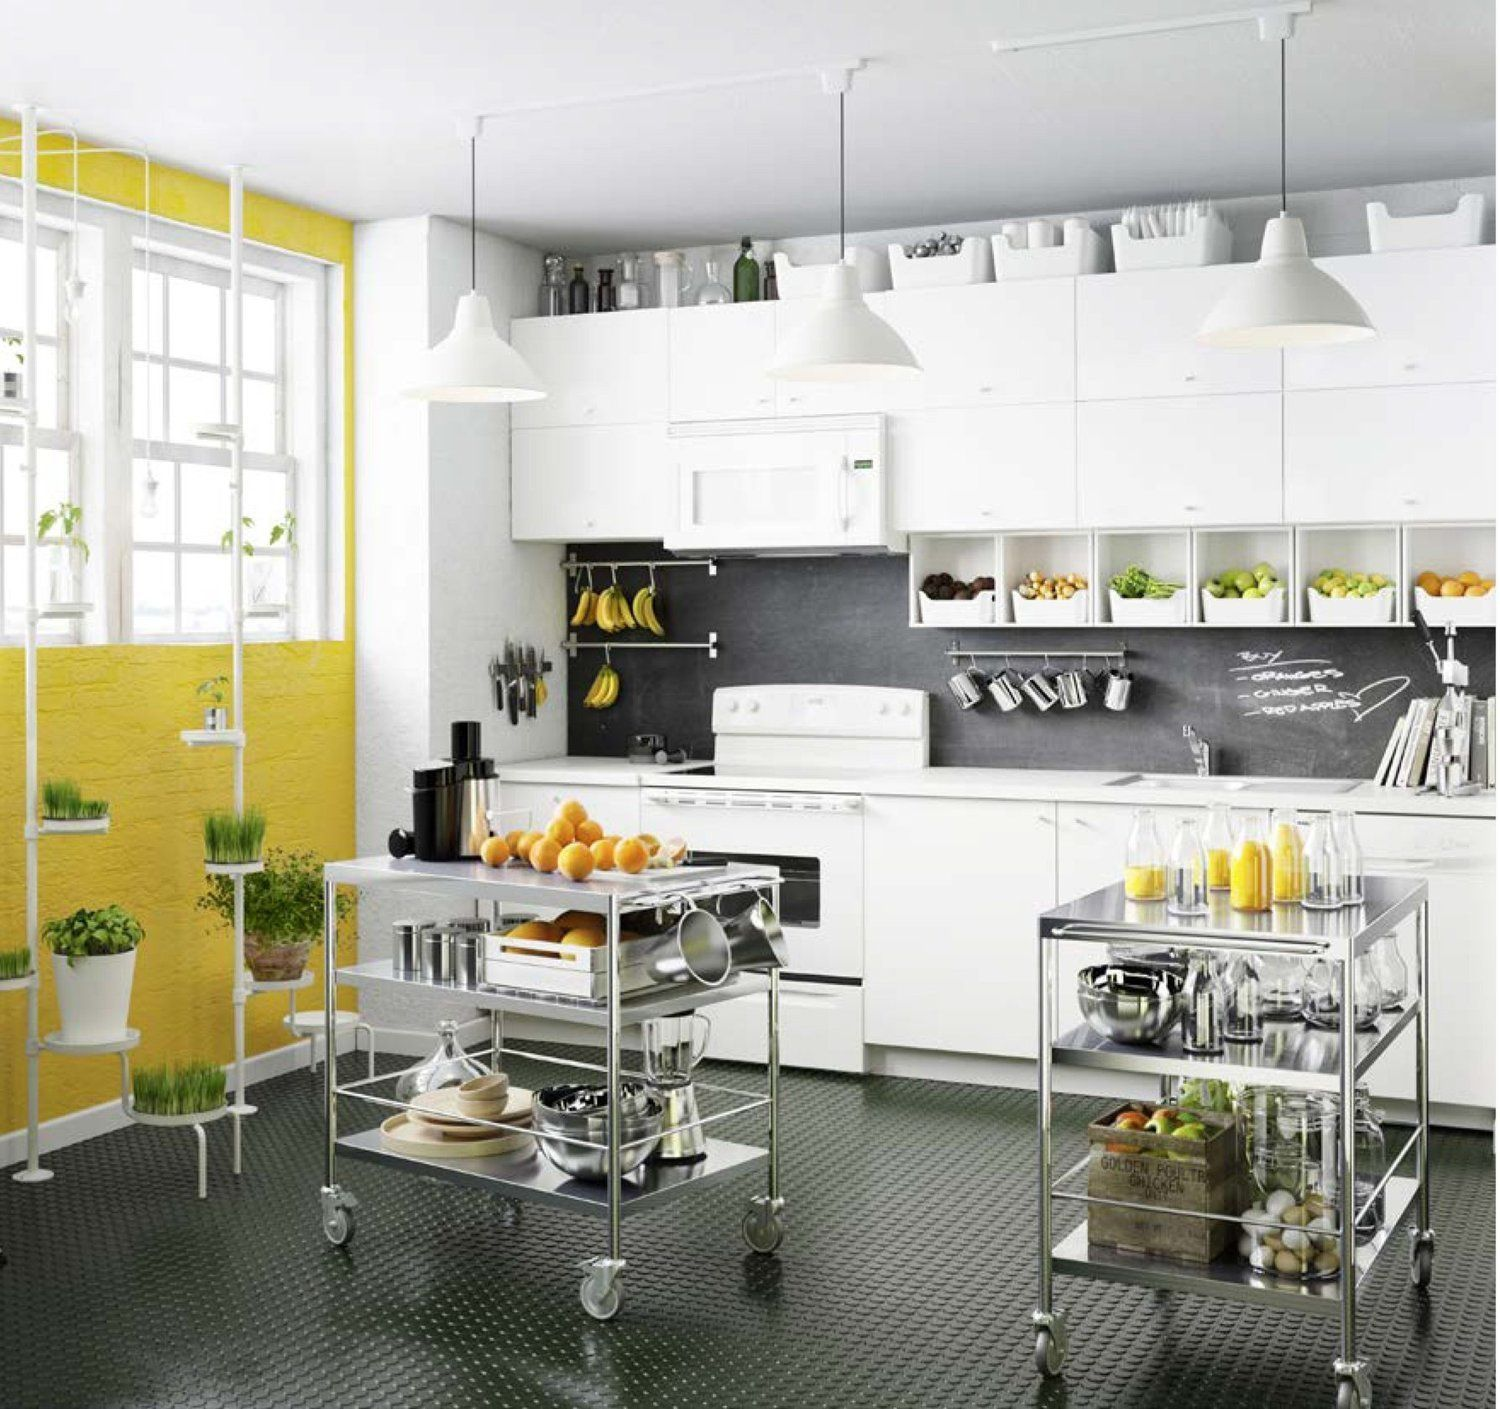 A Guide To Ikea's New Sektion Kitchen Cabinets We've Got Sizes Cool How Much Does It Cost To Replace Kitchen Cabinets Design Decoration